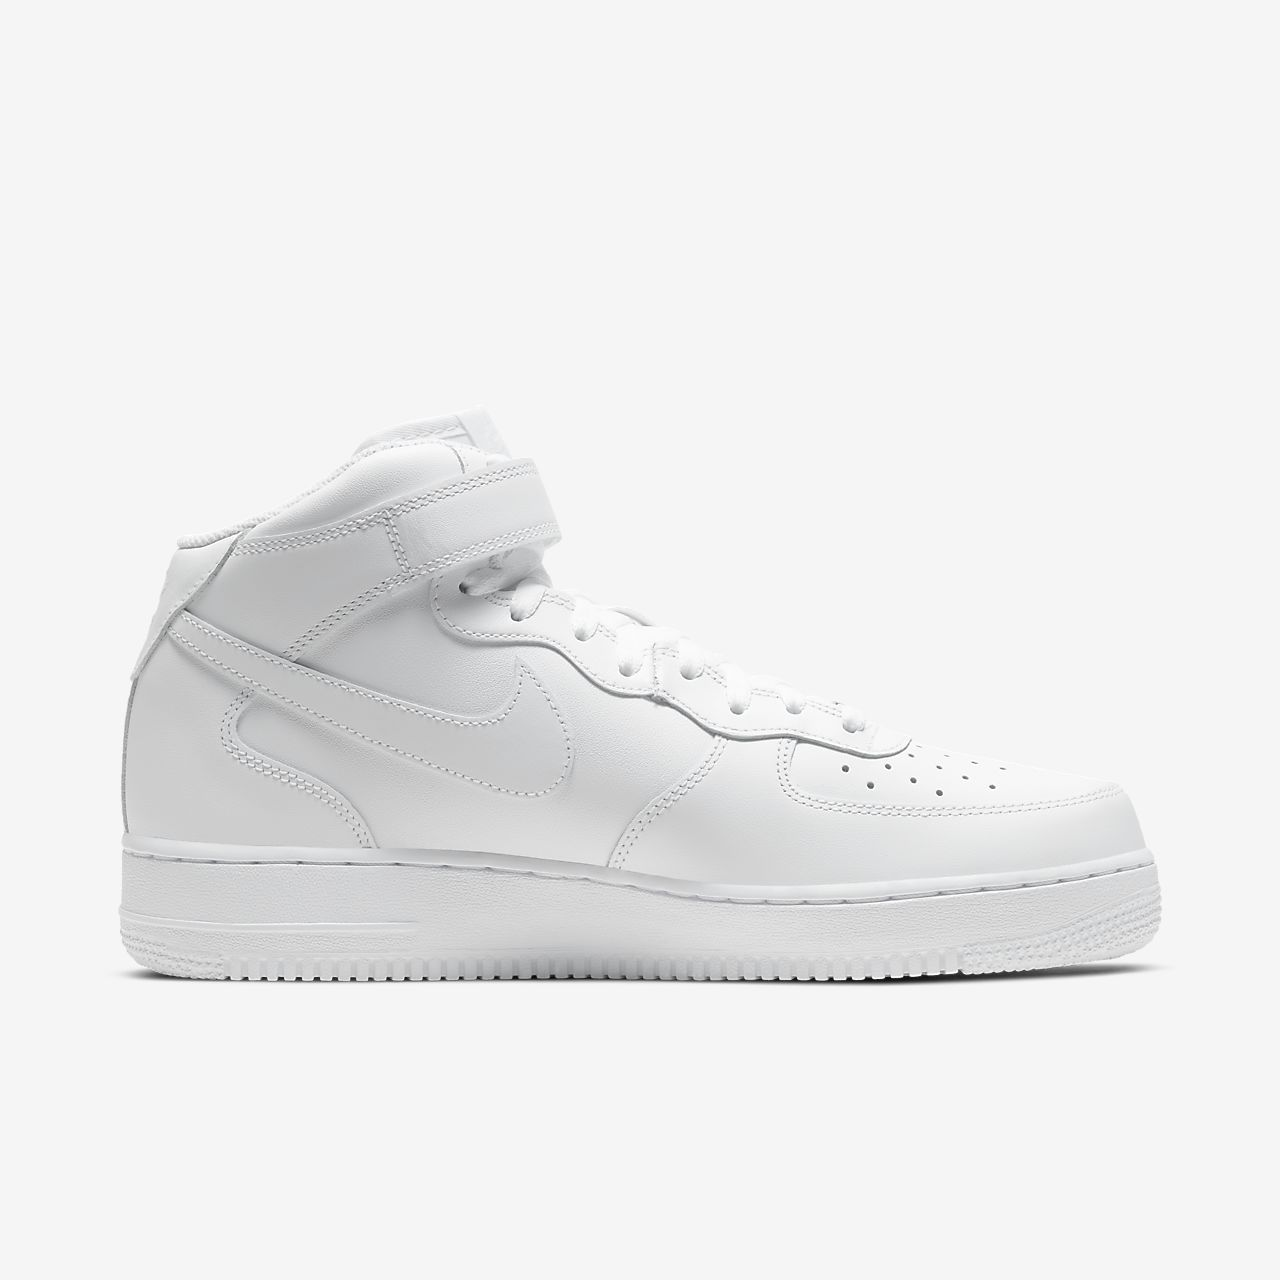 nike air force 1 mid 07 white and black nz